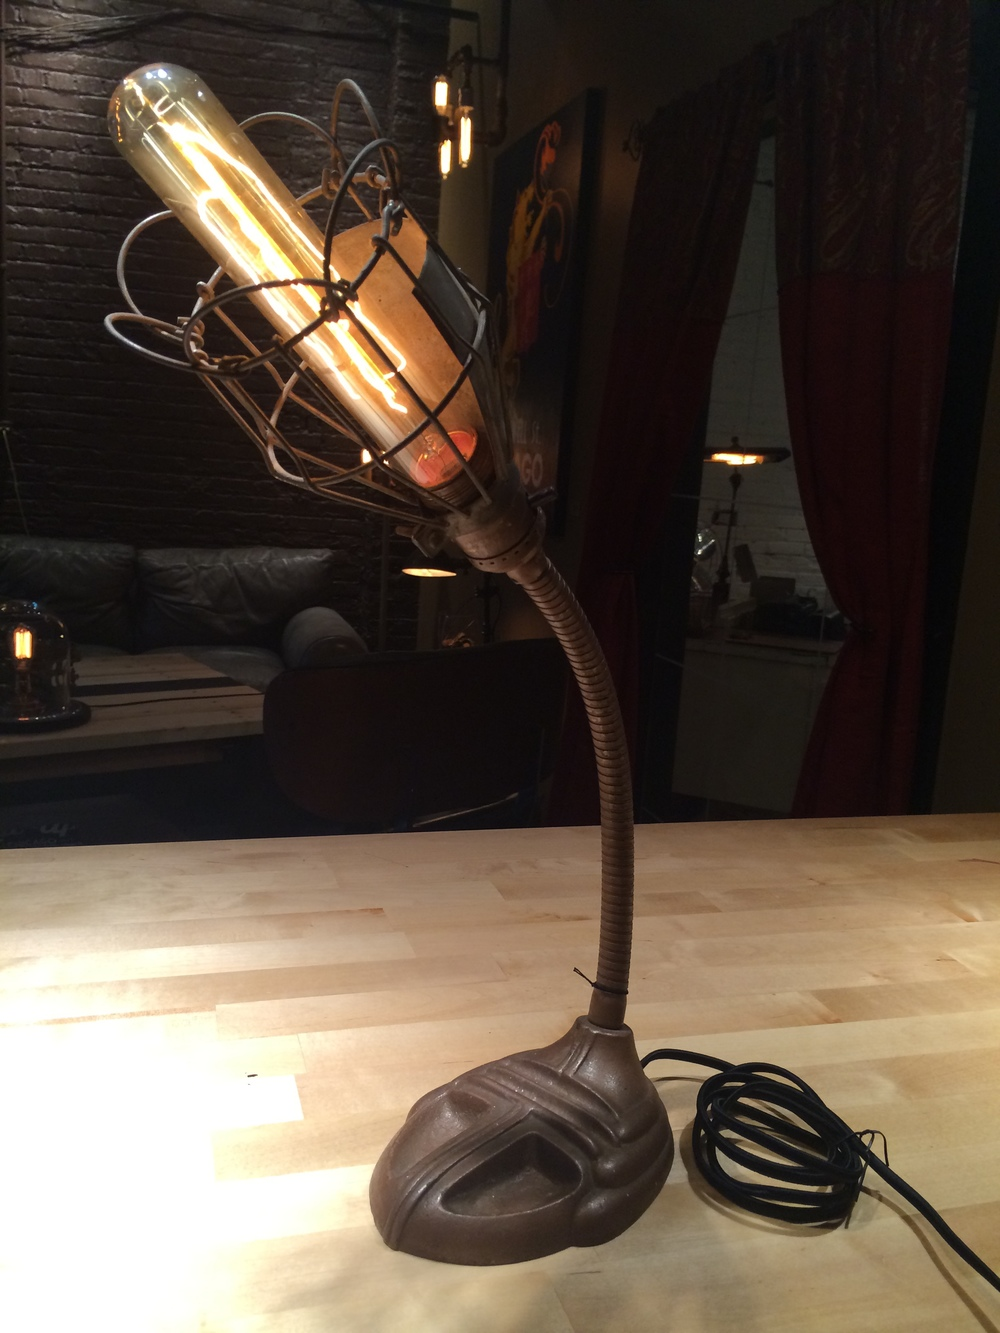 Goose Neck Table Lamp - $79